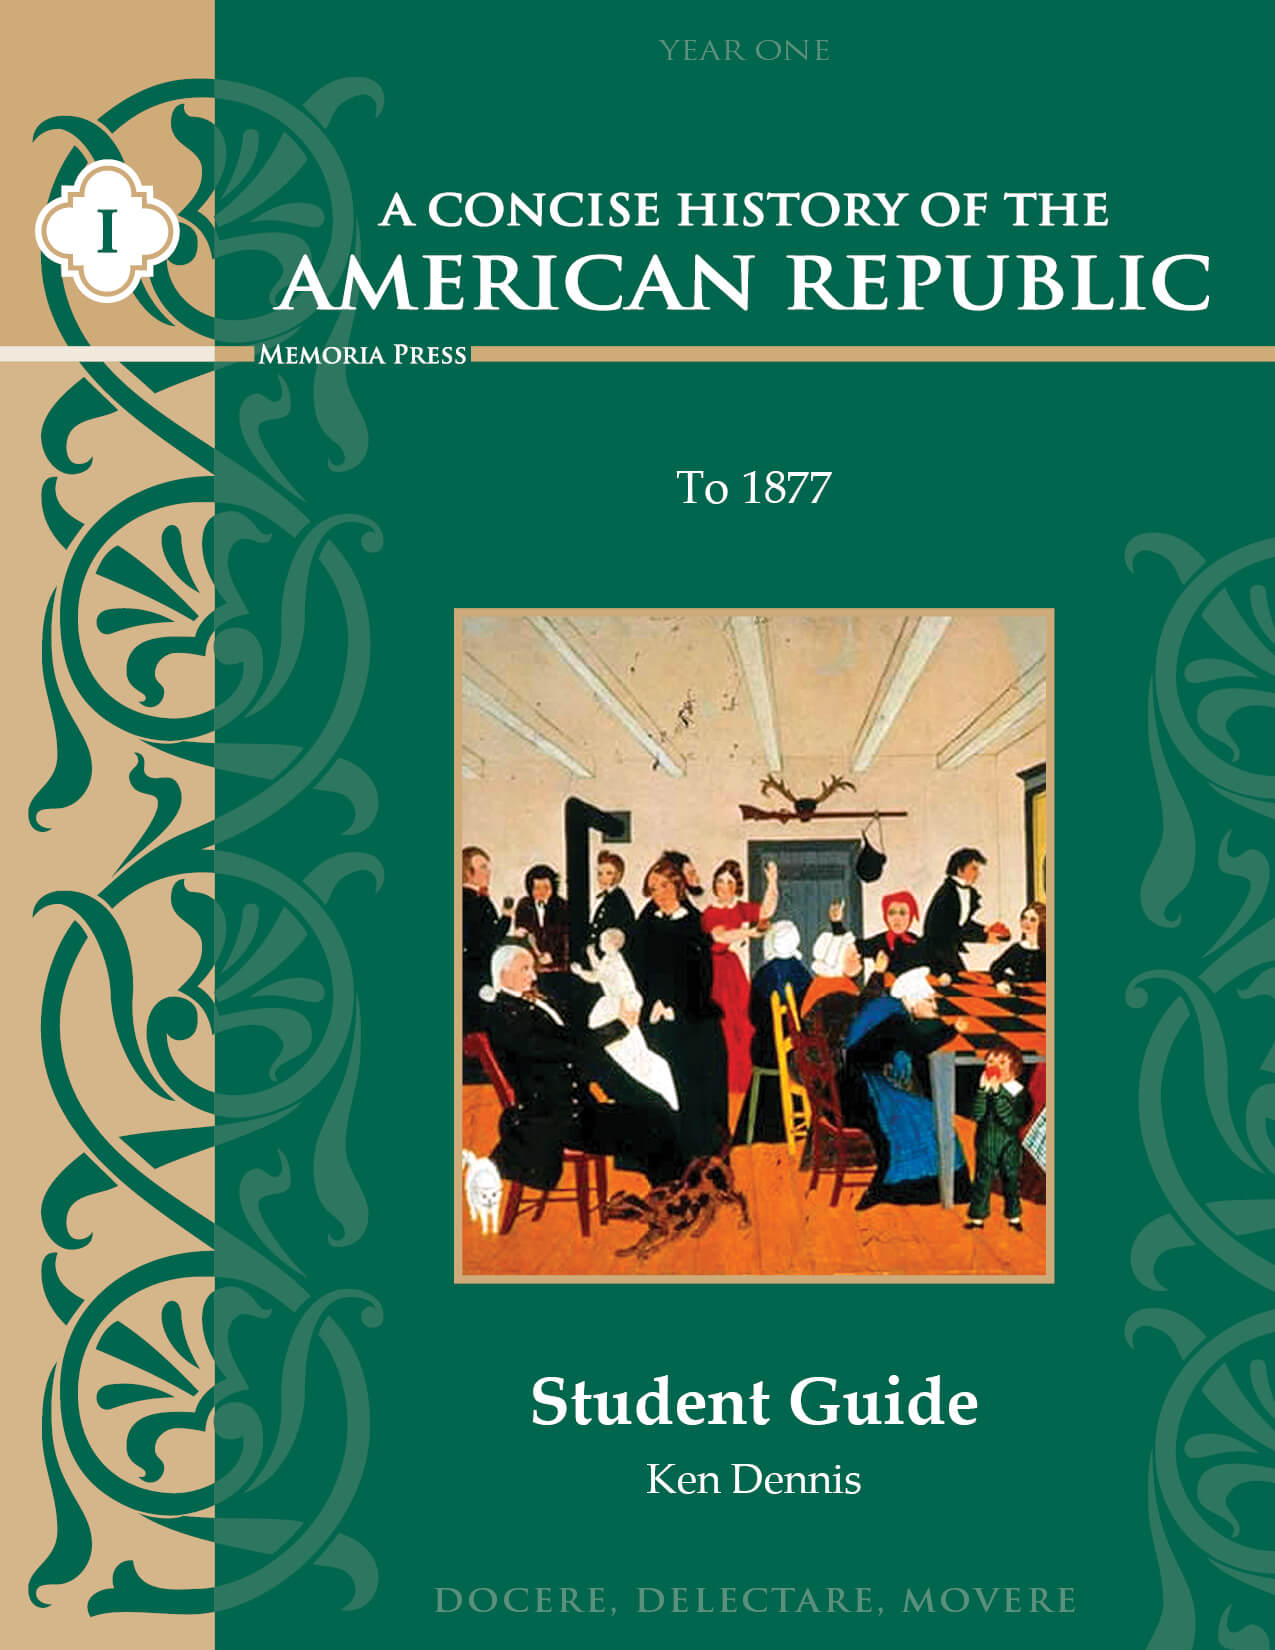 a history of the american republic Find great deals on ebay for a concise history of the american republic shop with confidence.